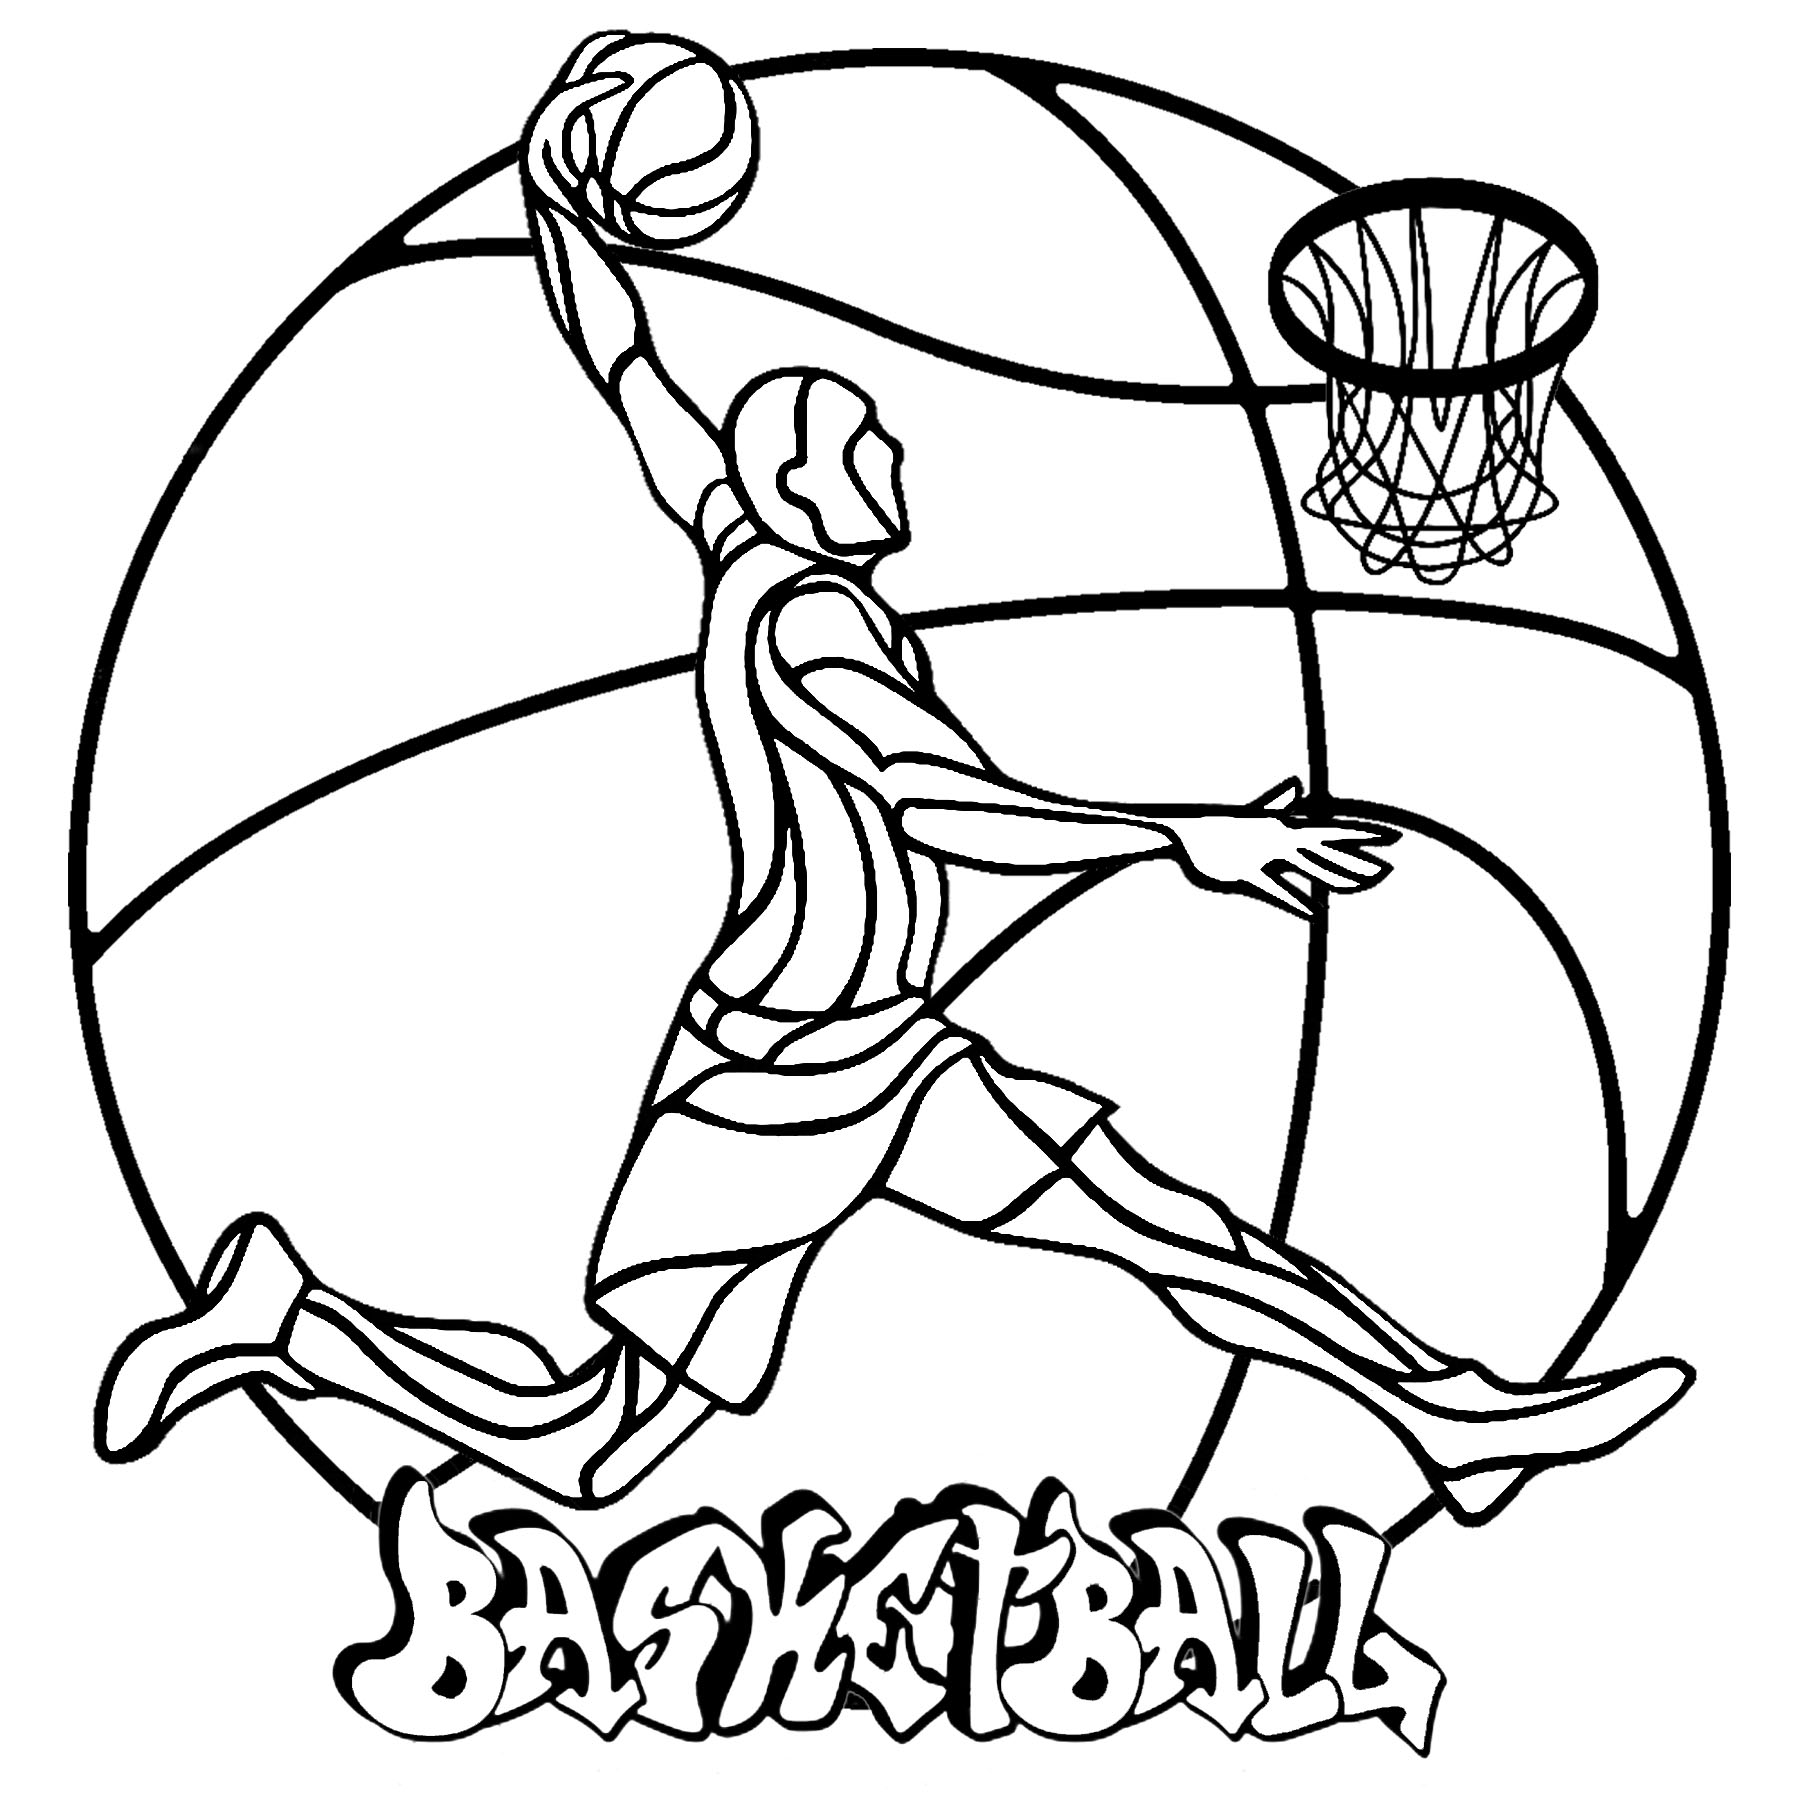 basketball coloring sheet basketball coloring pages free download on clipartmag sheet coloring basketball